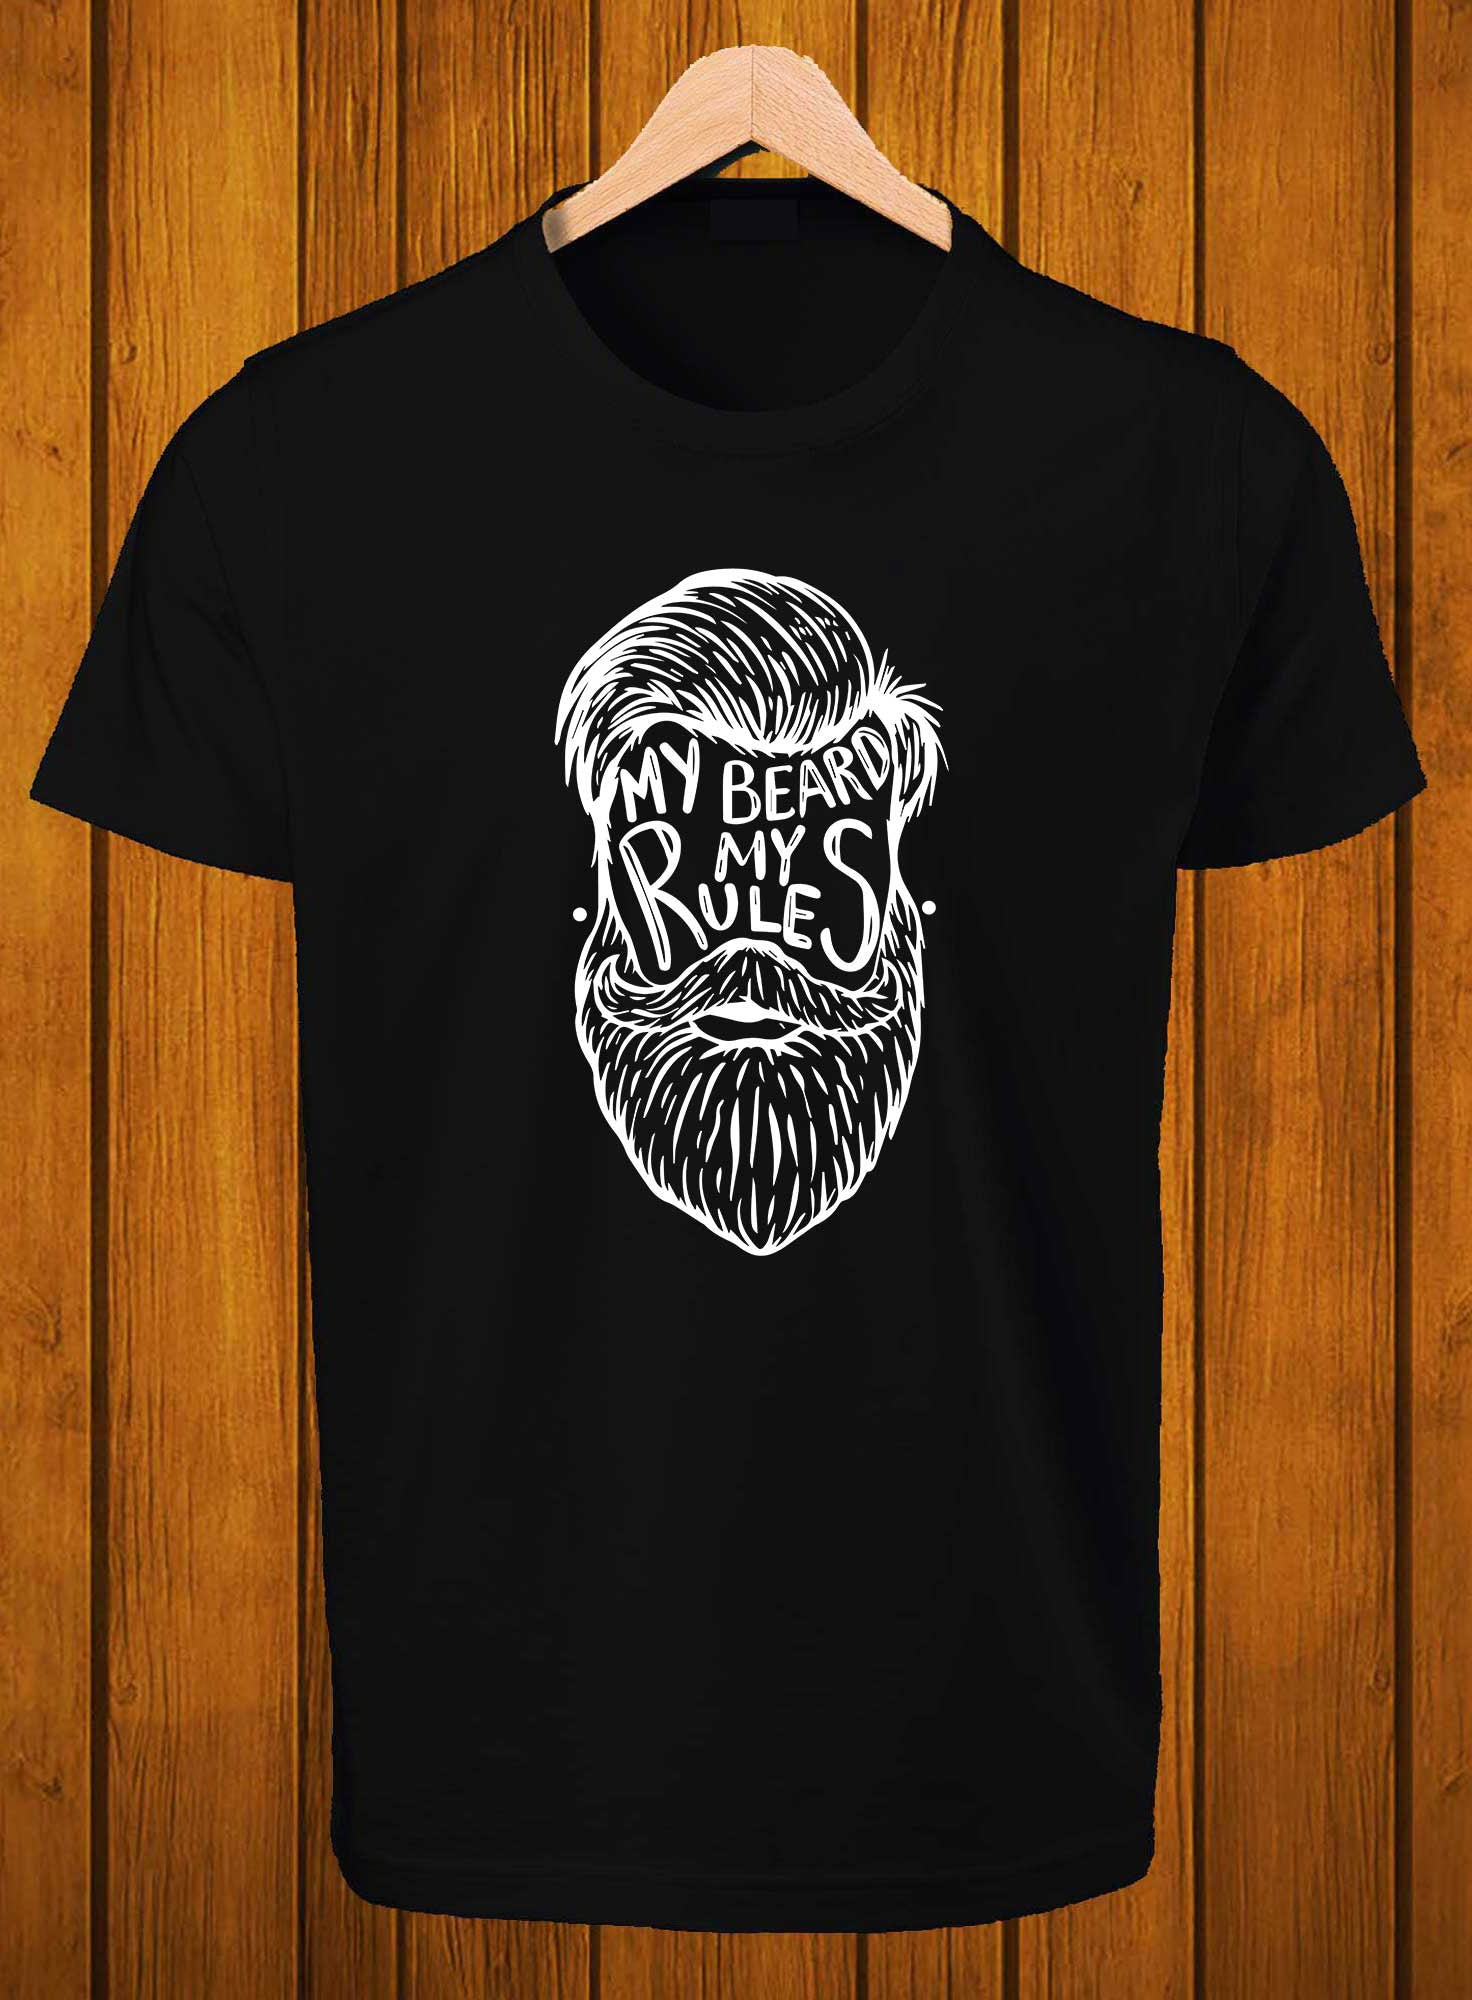 T-Shirt Swag My Beard my rules Printed Graphic T-Shirt